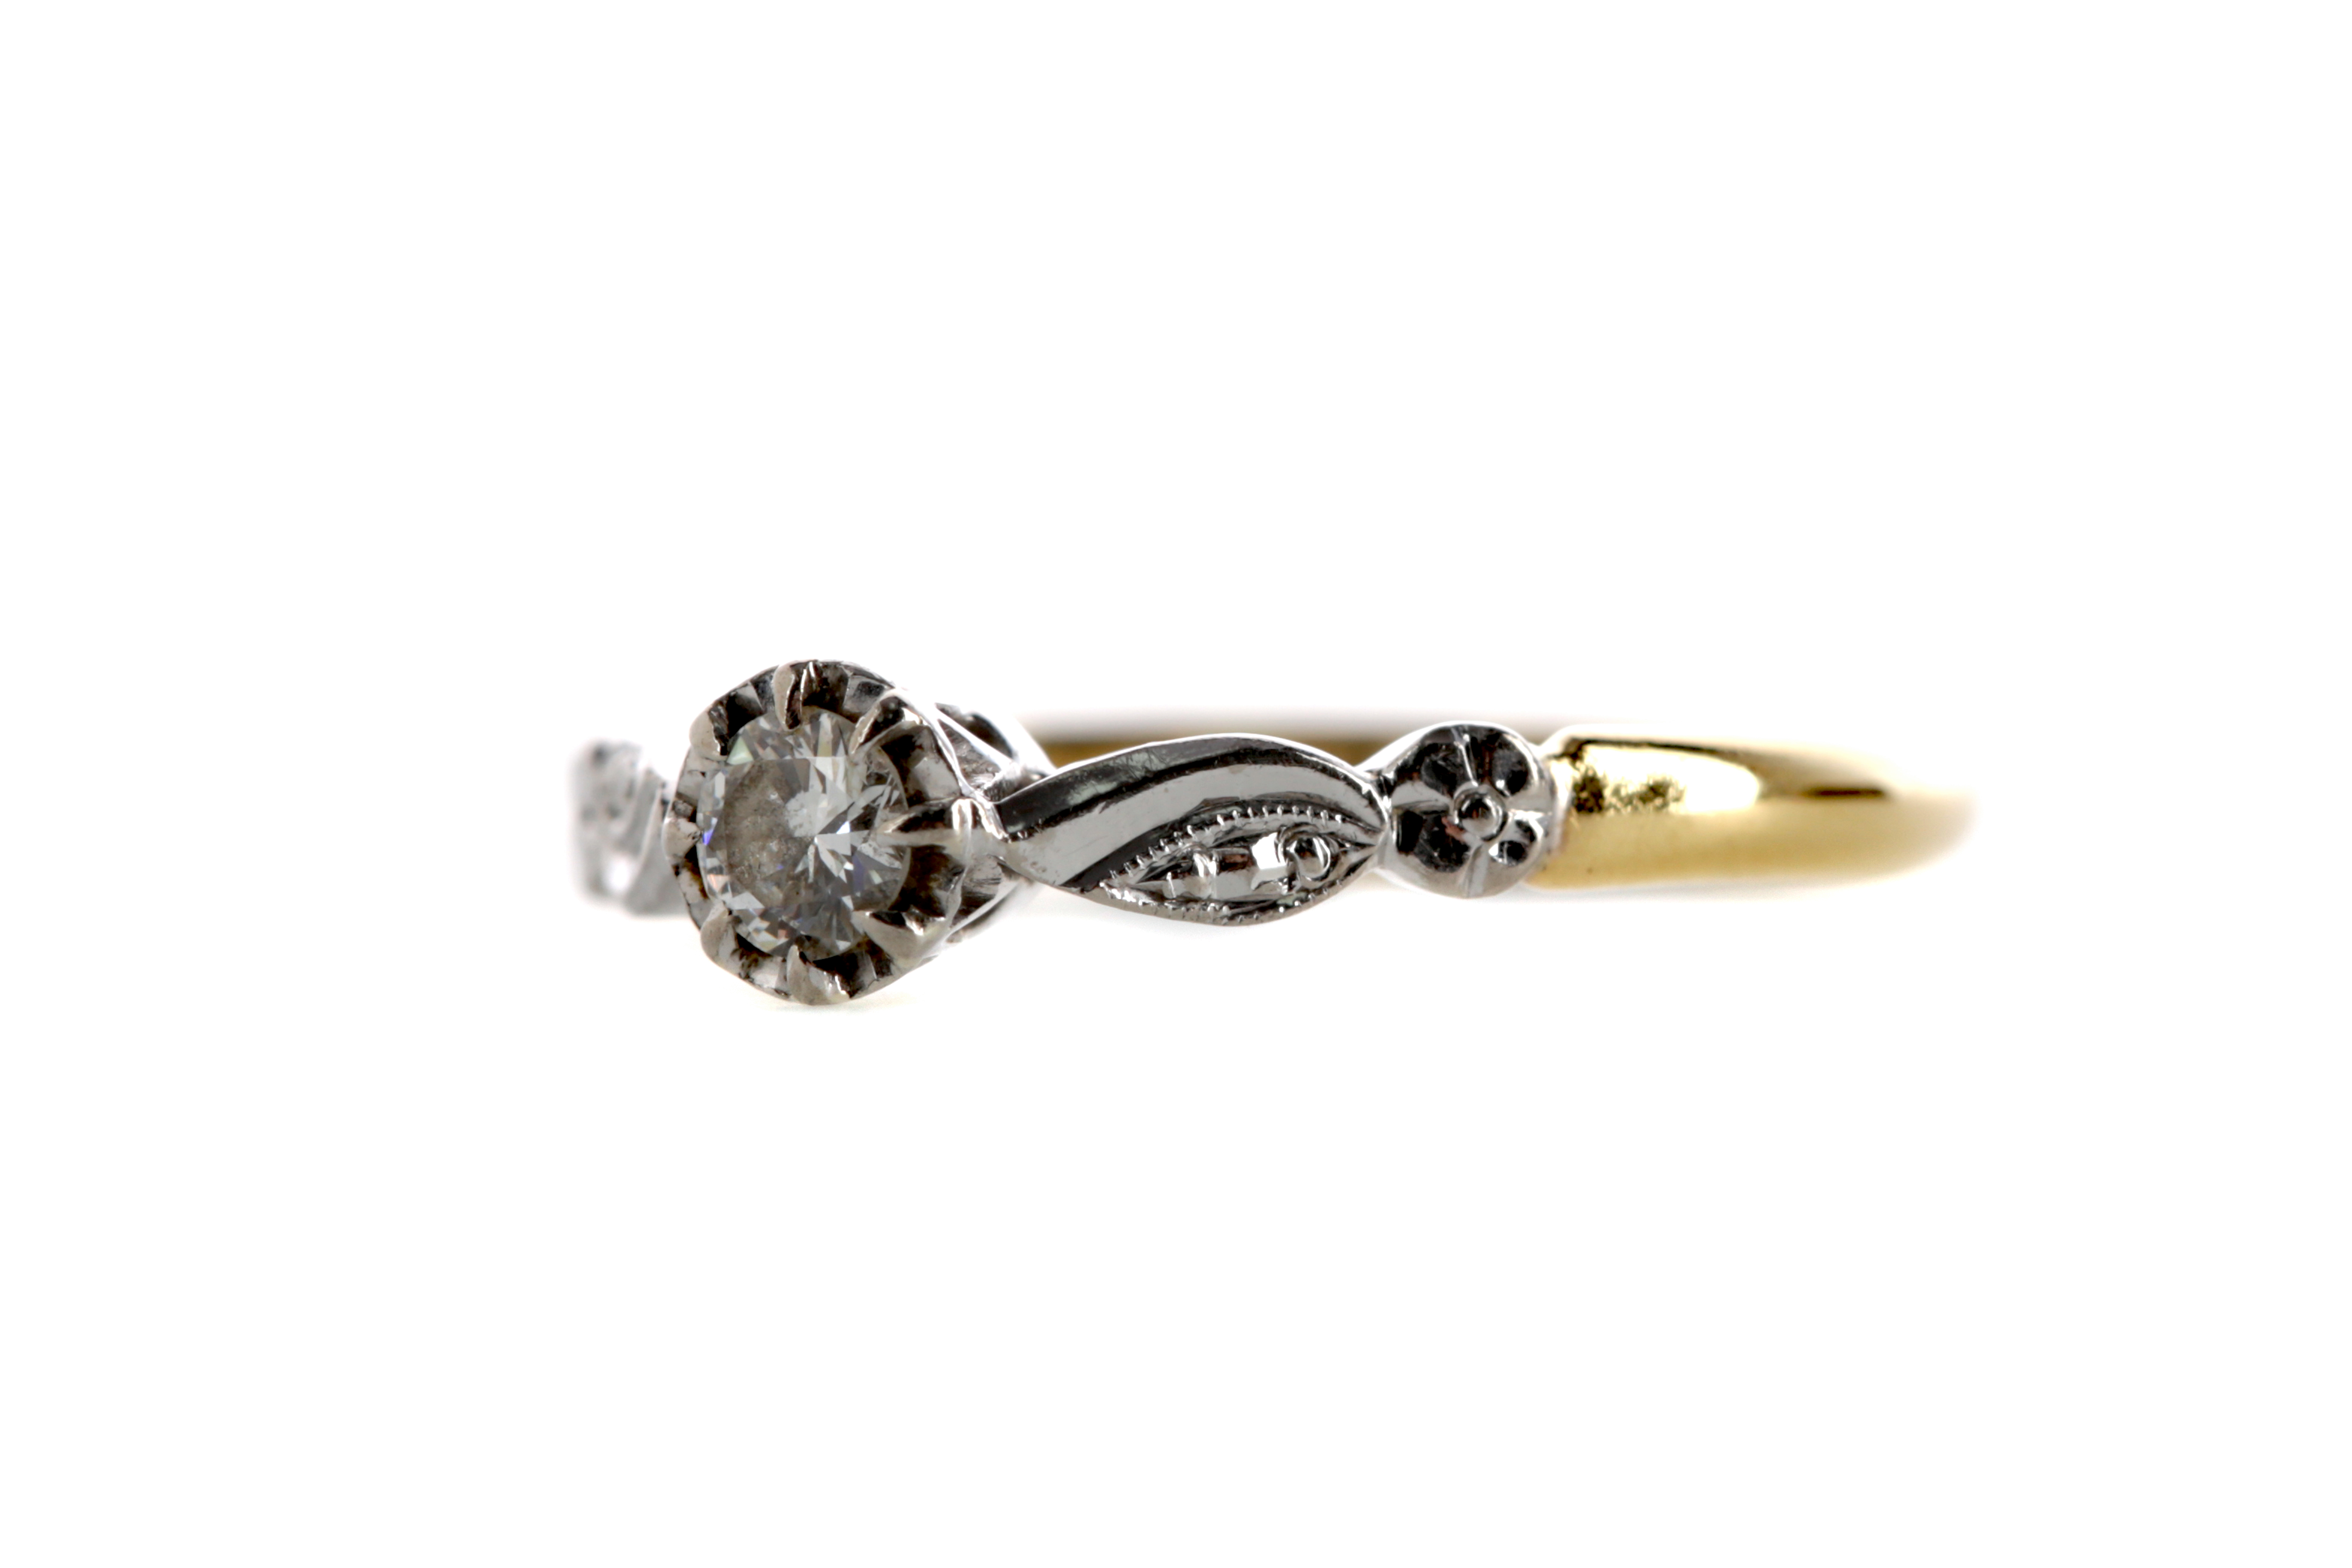 A DIAMOND SOLITAIRE RING - Image 2 of 2